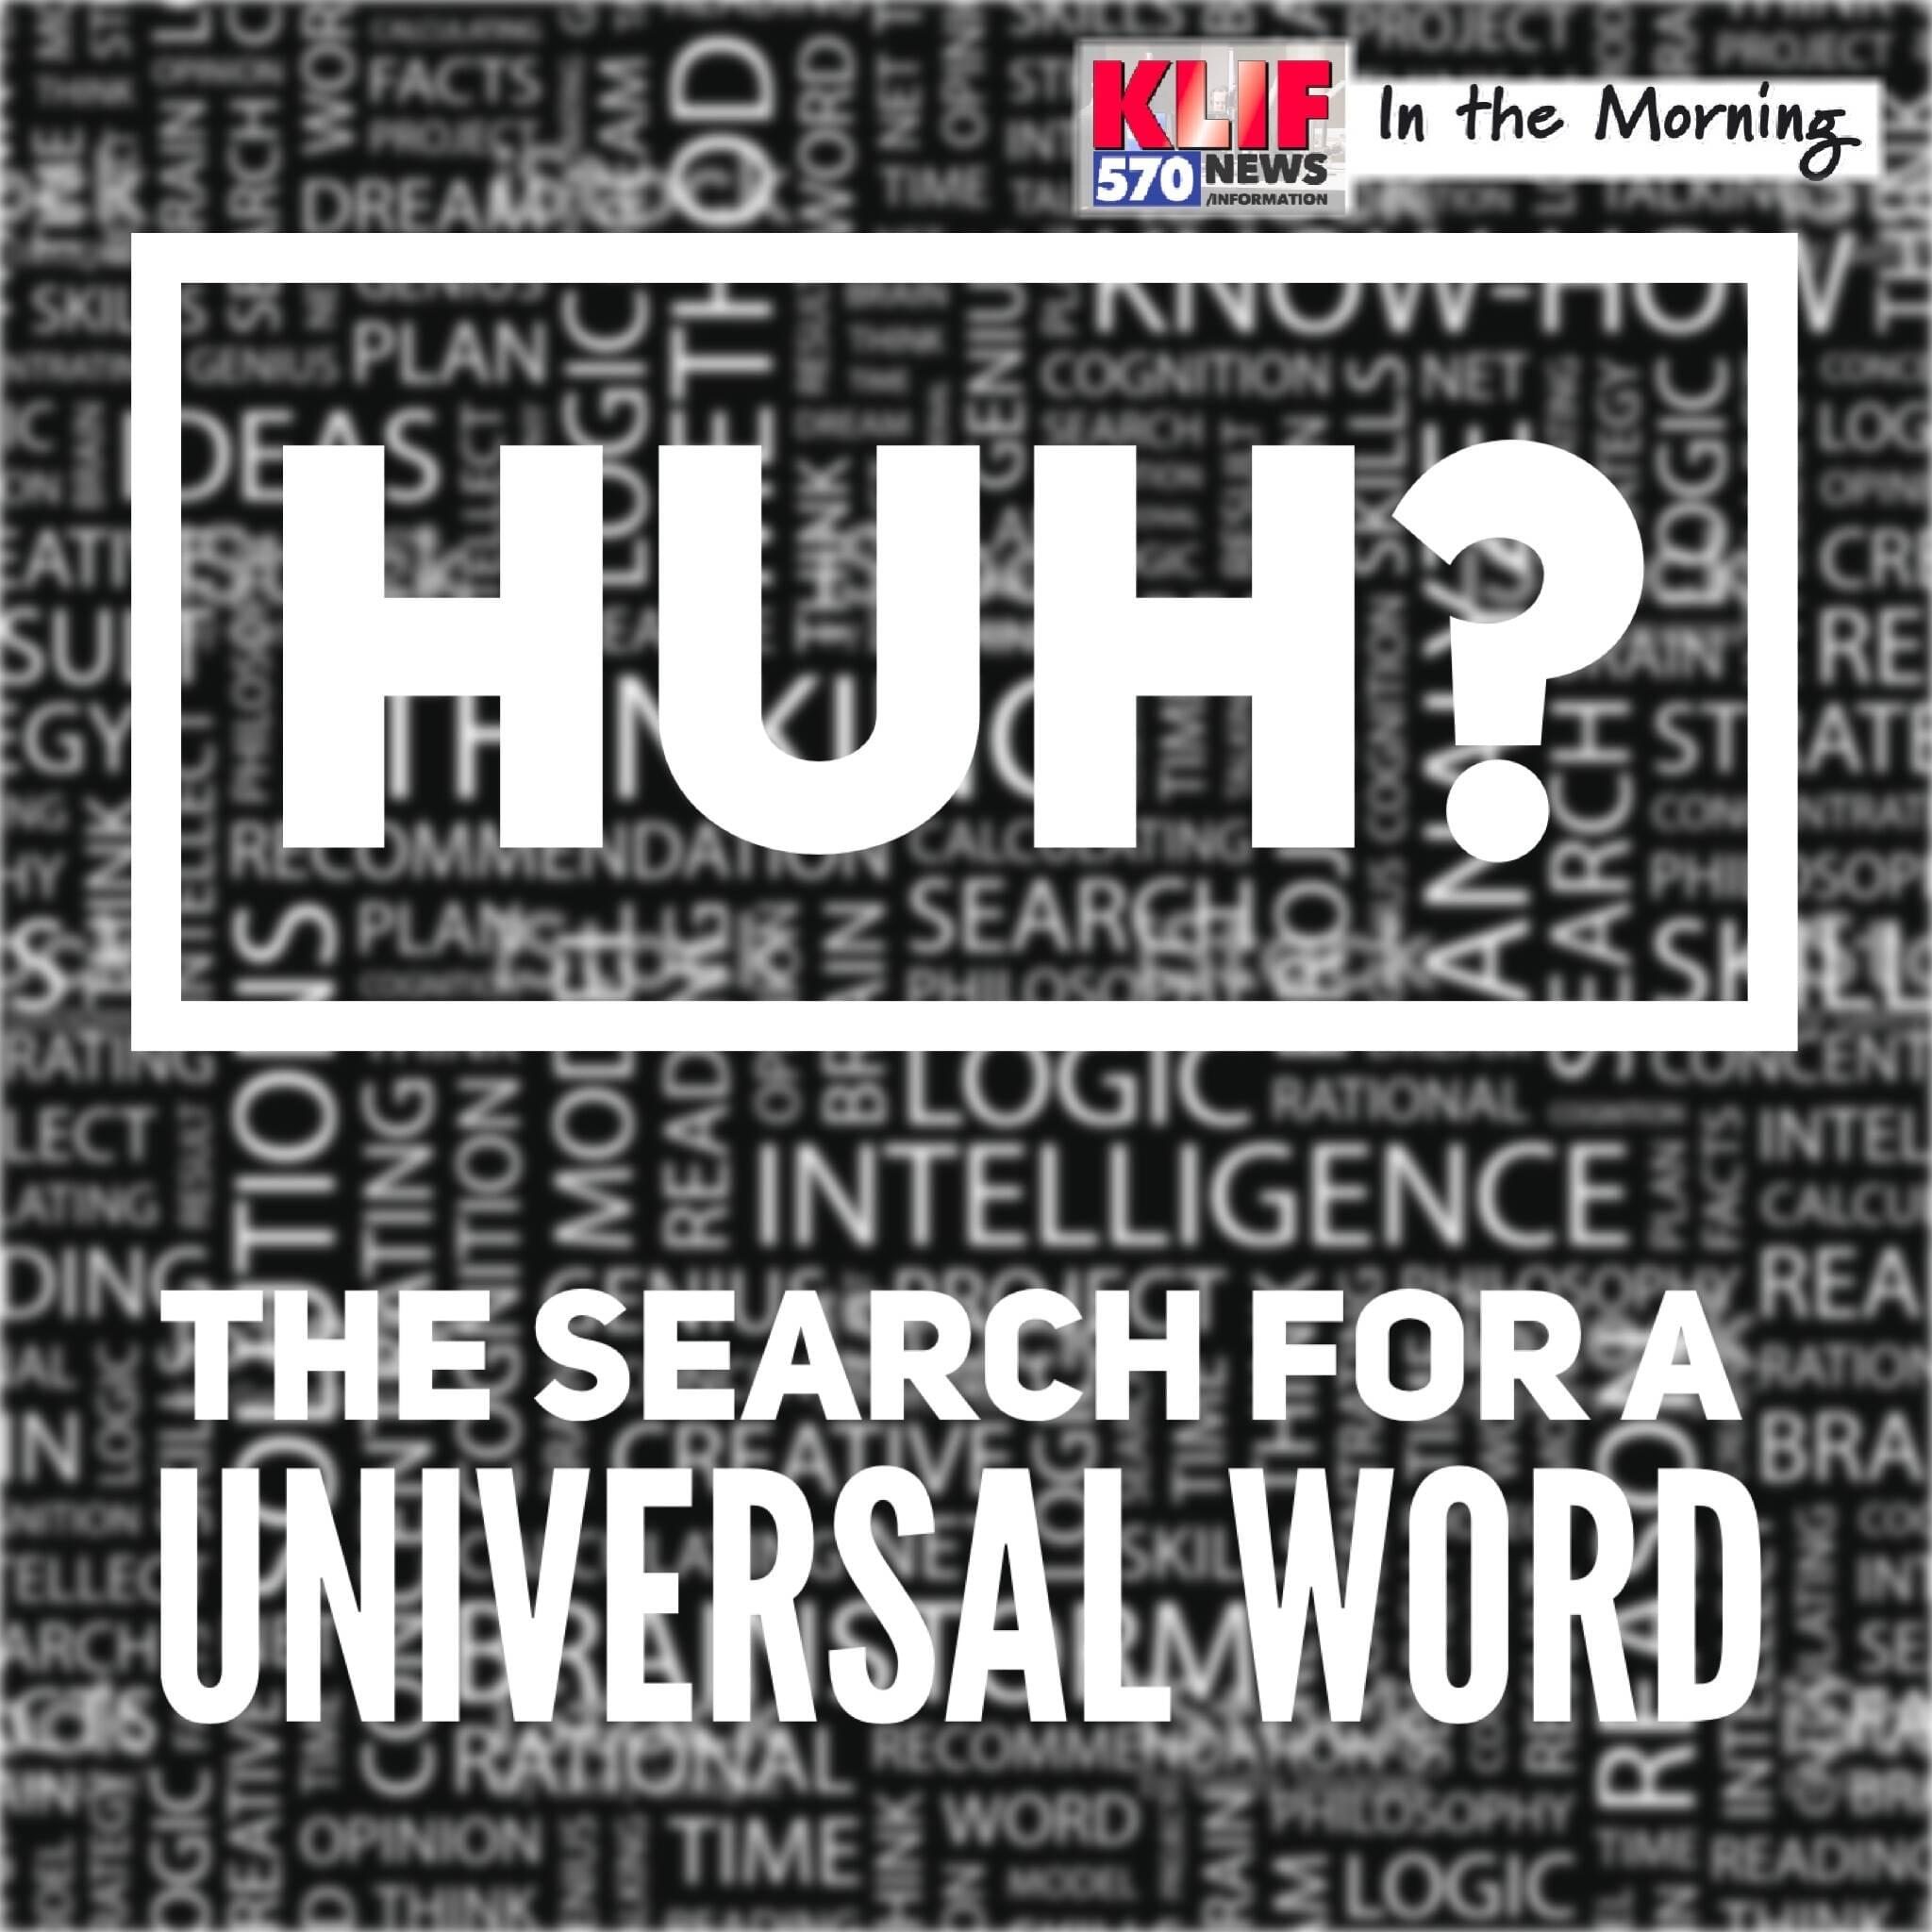 What's the One Universal Word?